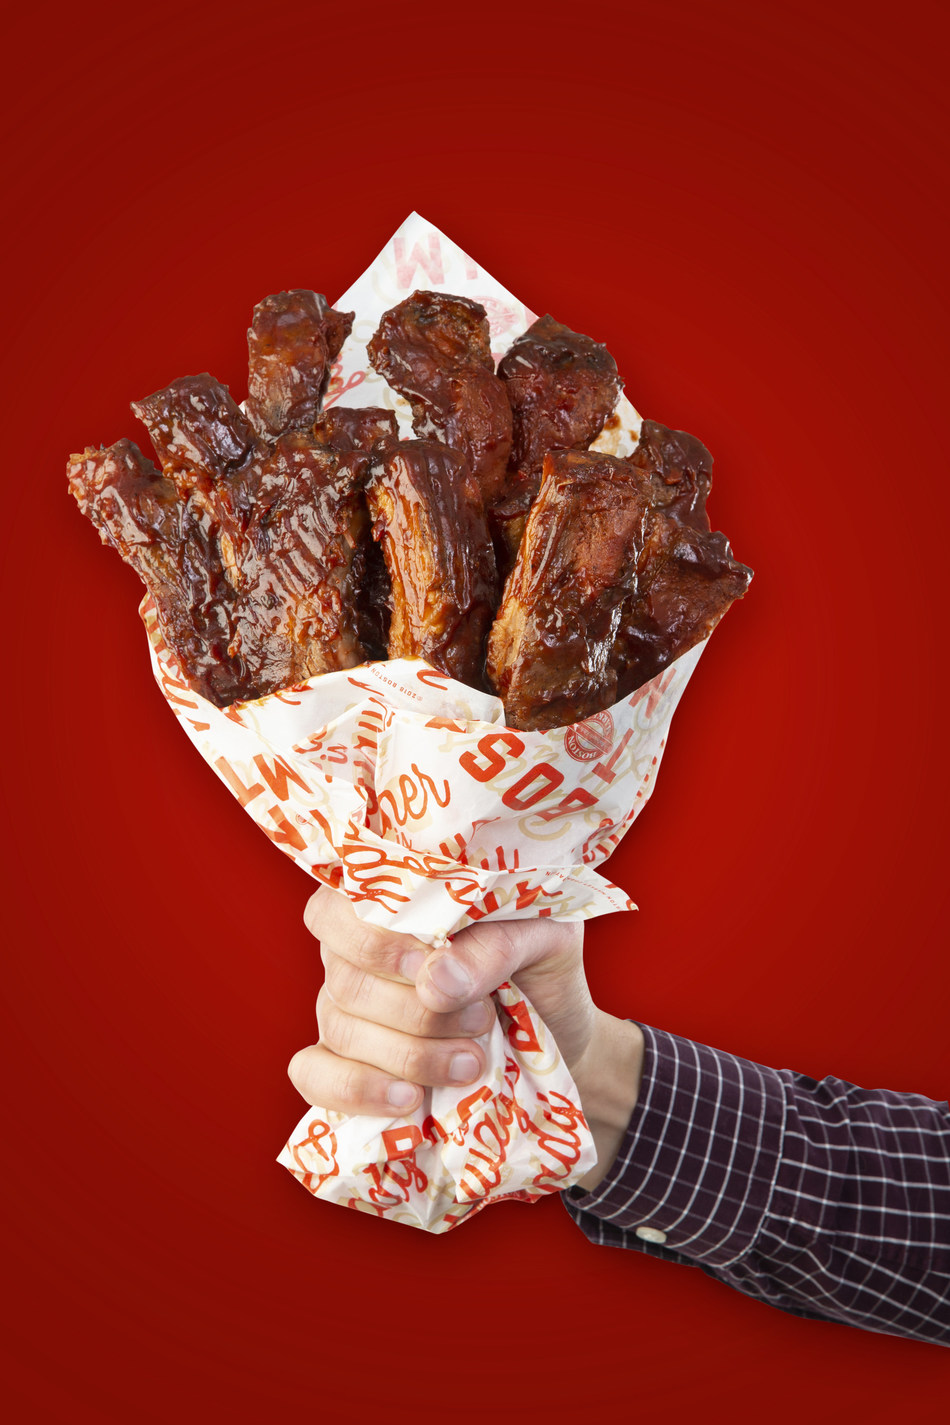 This Valentine's Day, ditch the traditional bouquet of flowers for one made of one dozen tender, mouthwatering Boston Market Baby Back Ribs. The limited edition and sure-to-be-coveted BAE-by Back Ribs Bouquet will be available for purchase on Friday, February 14 in all Boston Market restaurants nationwide while supplies last for $29.99 each. www.BostonMarket.com